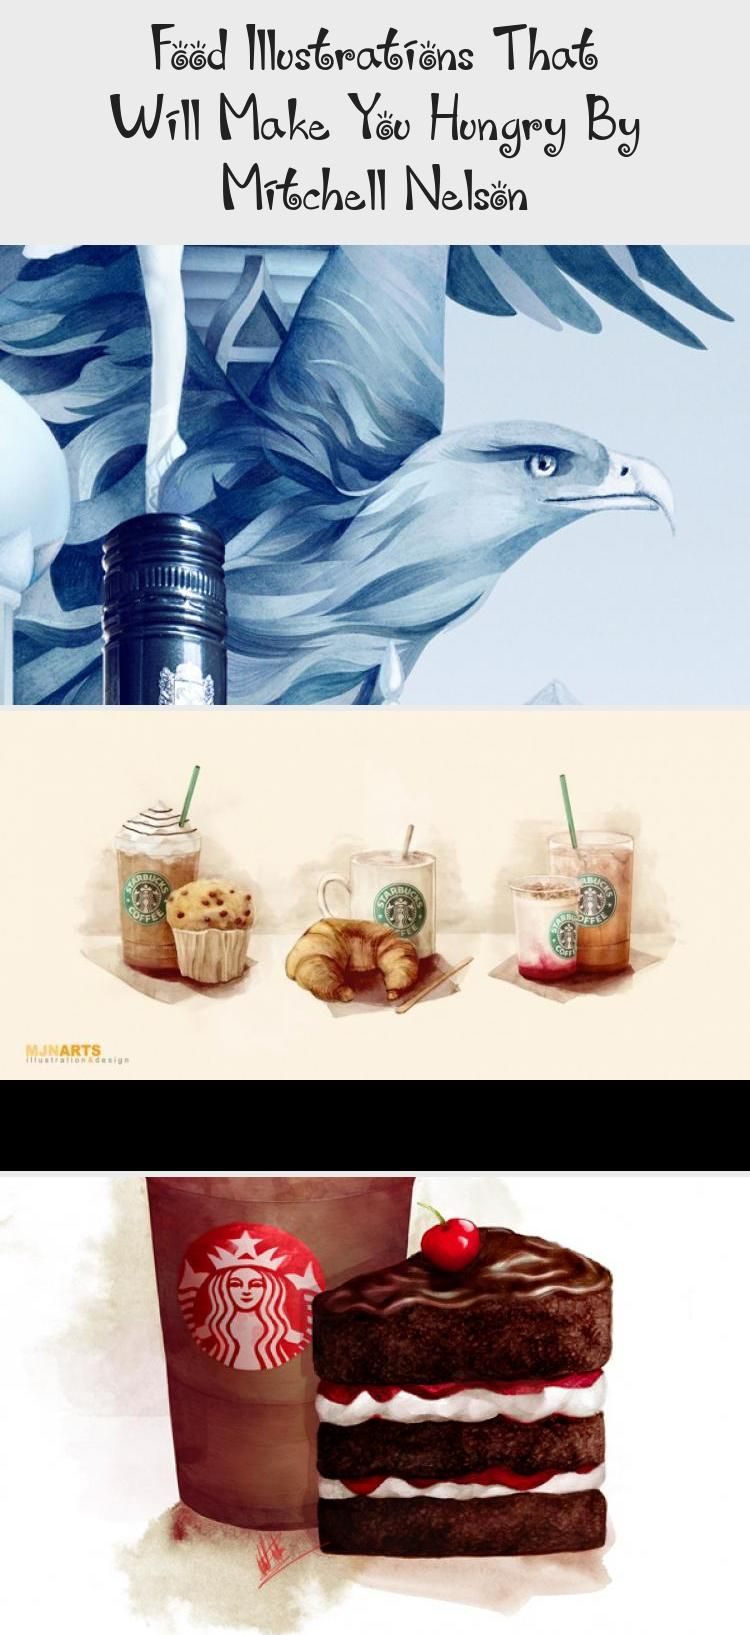 Food Illustrations That Will Make You Hungry By Mitchell Nelson #starbuckscake